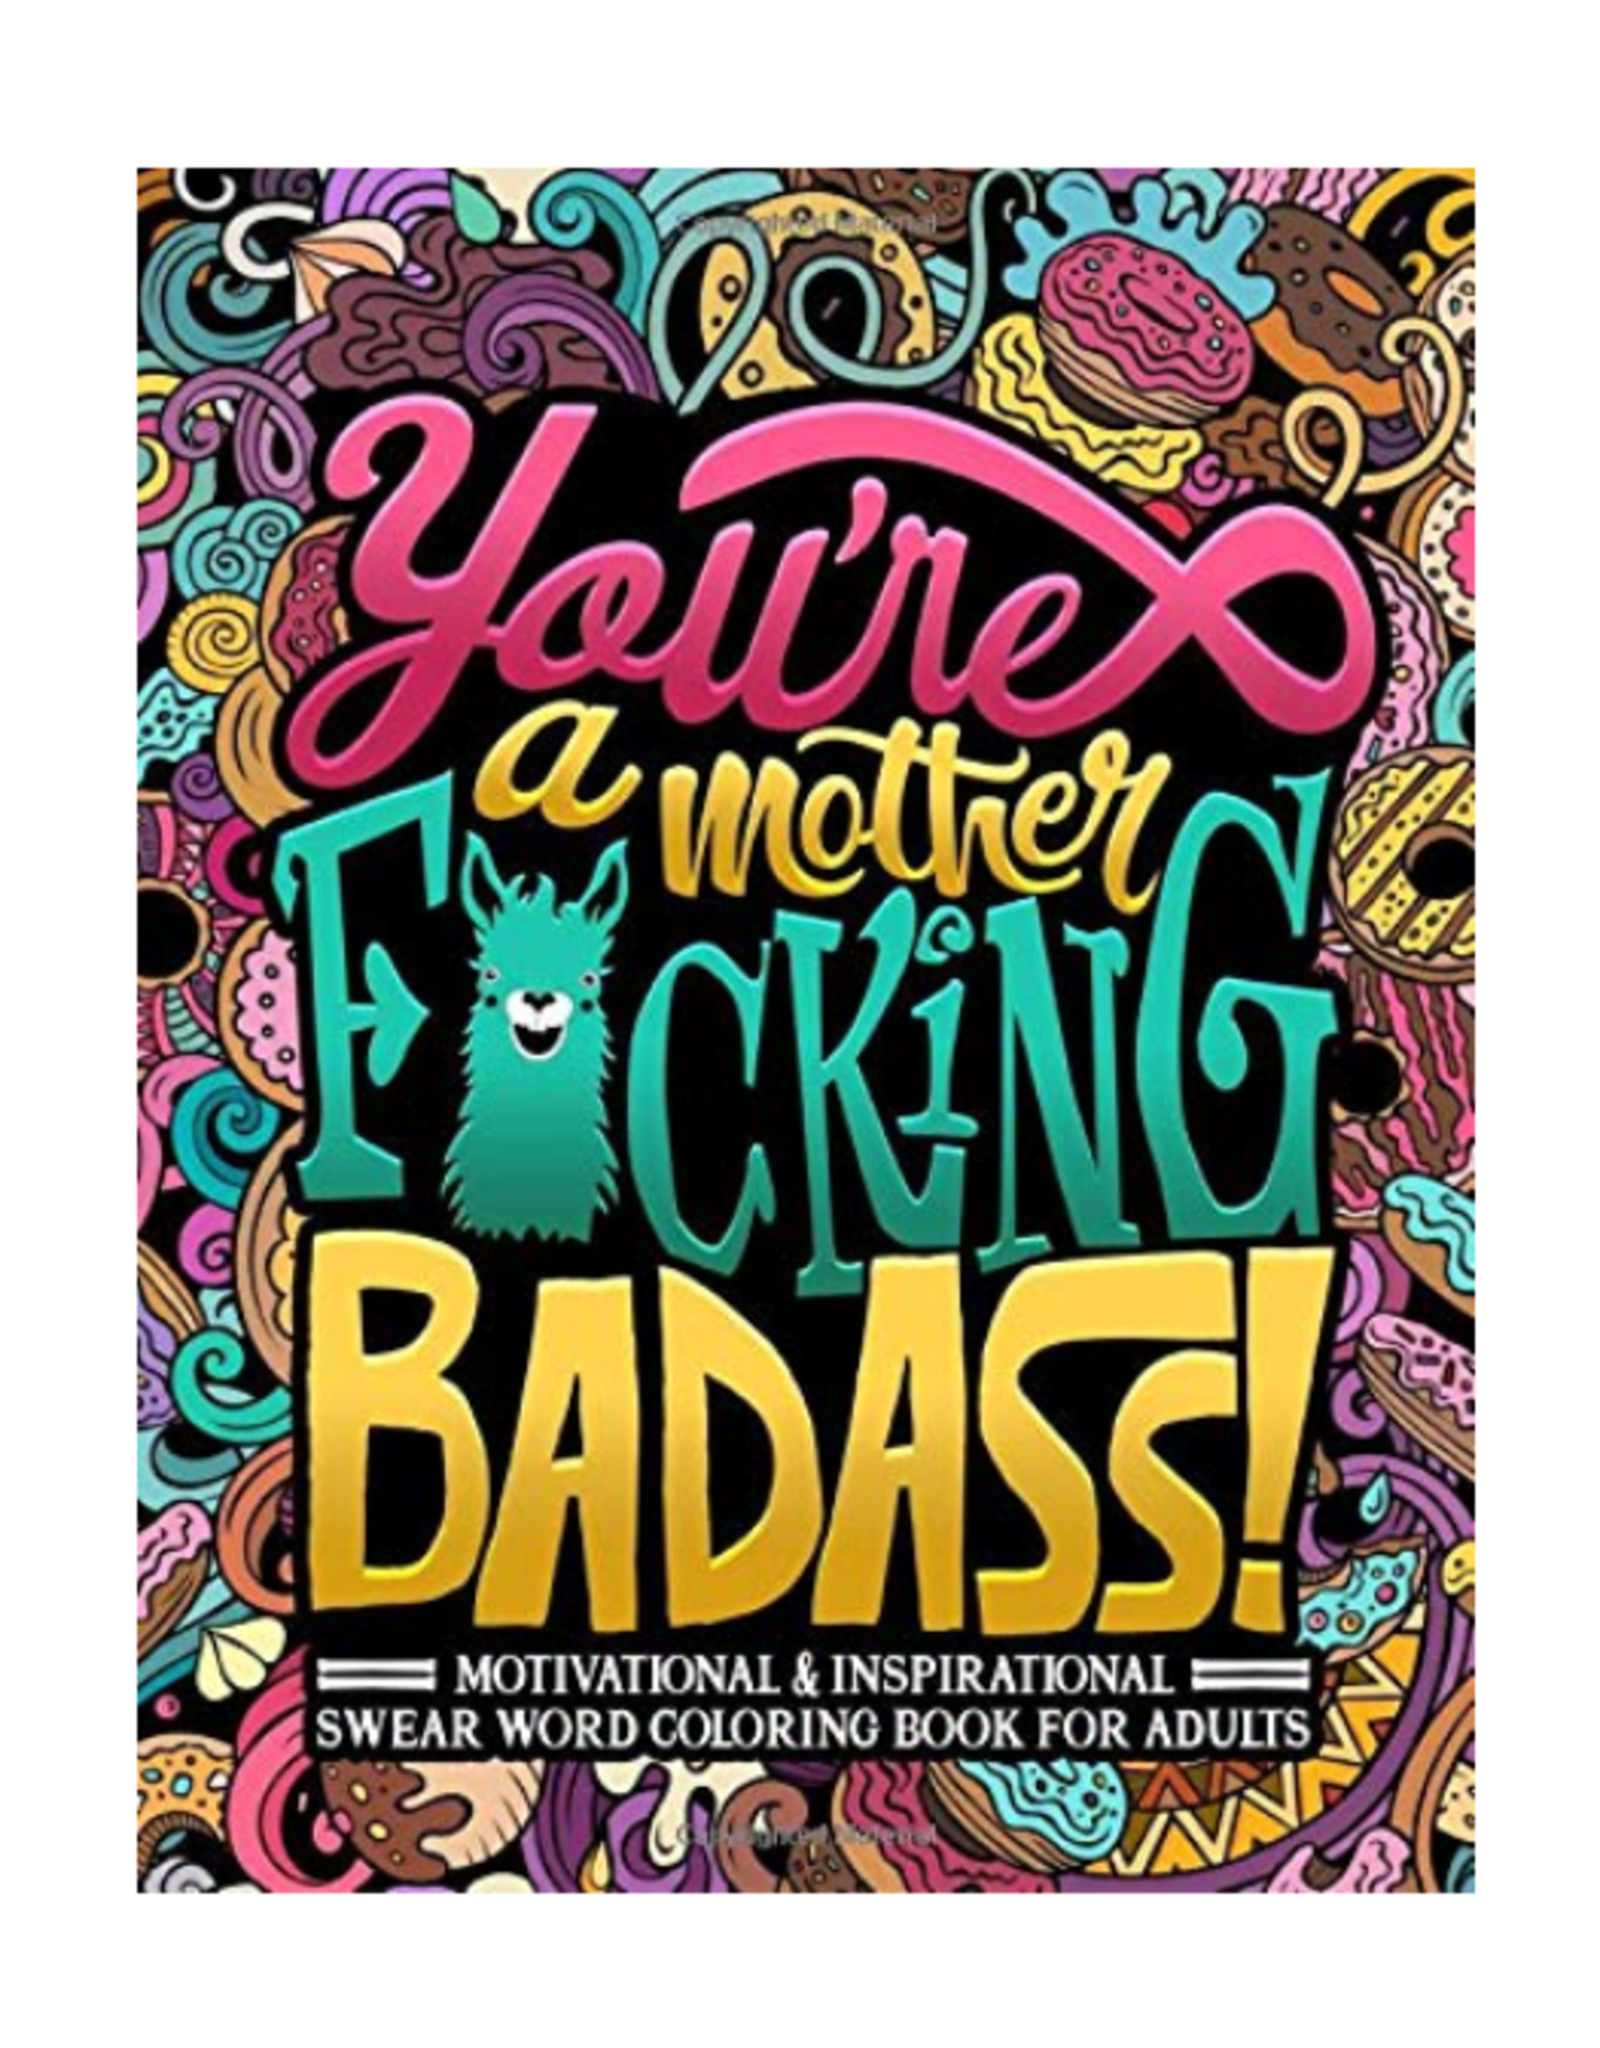 Honey Badger Coloring Colouring Book for Adults, You're a Mother F*cking Badass